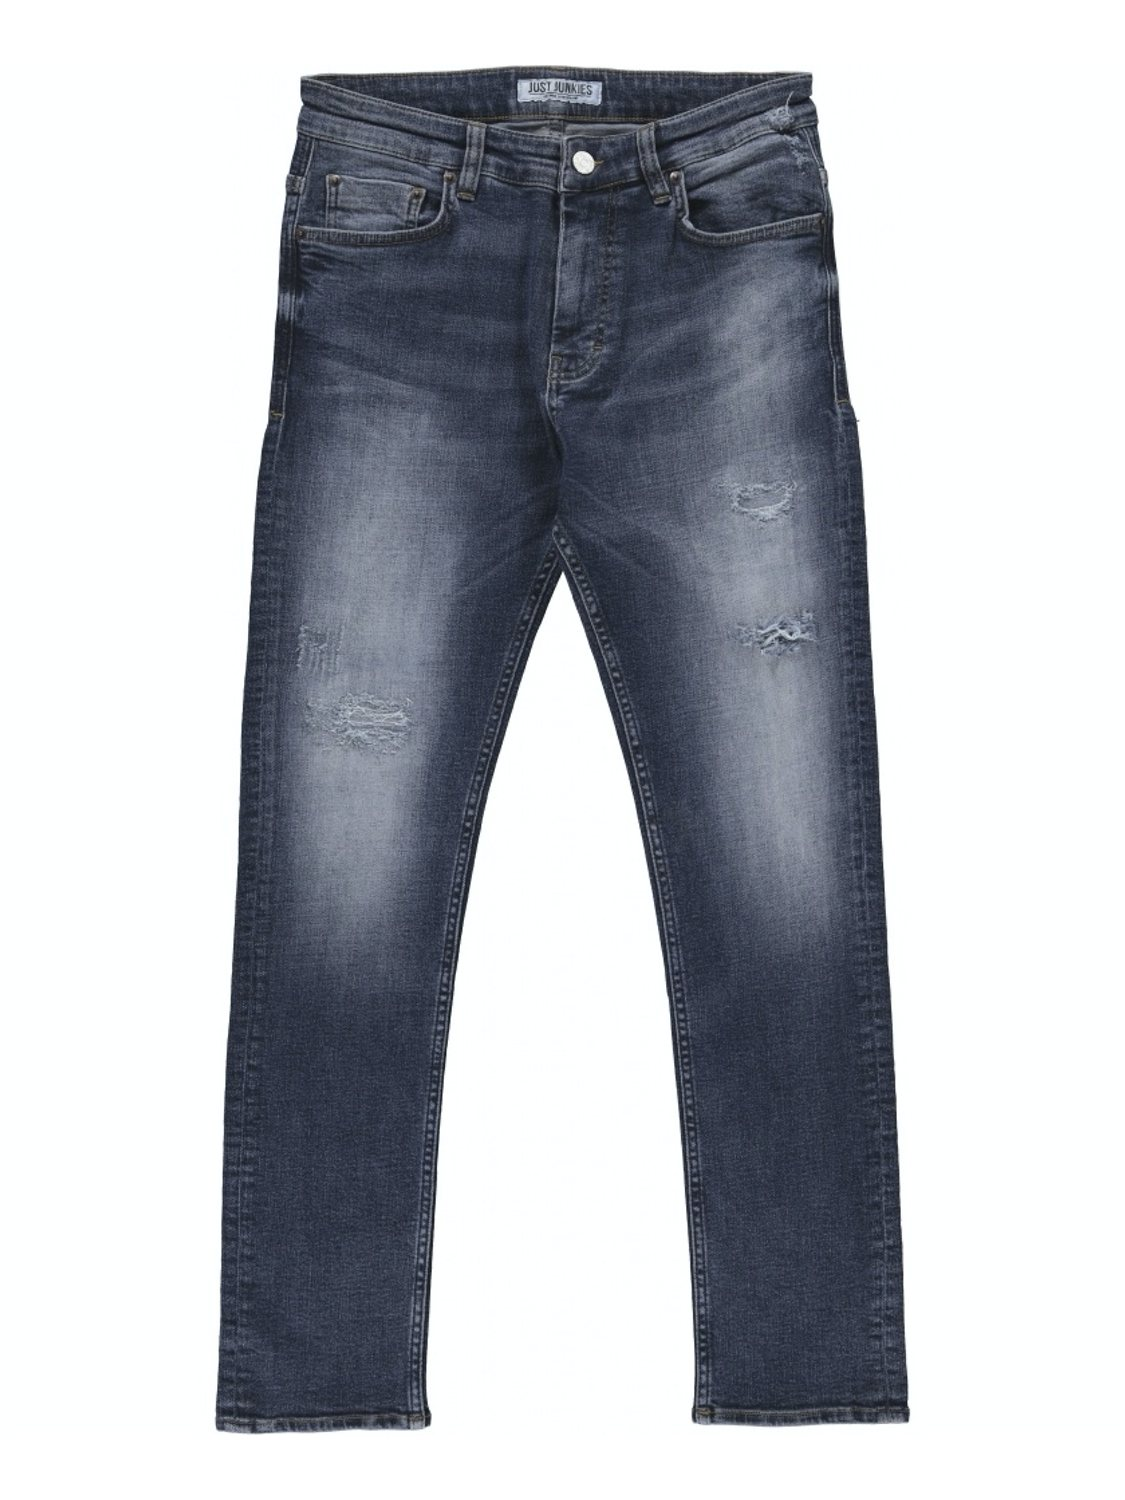 Just Junkies Jeans - Sicko Deep Blue | GATE 36 Hobro